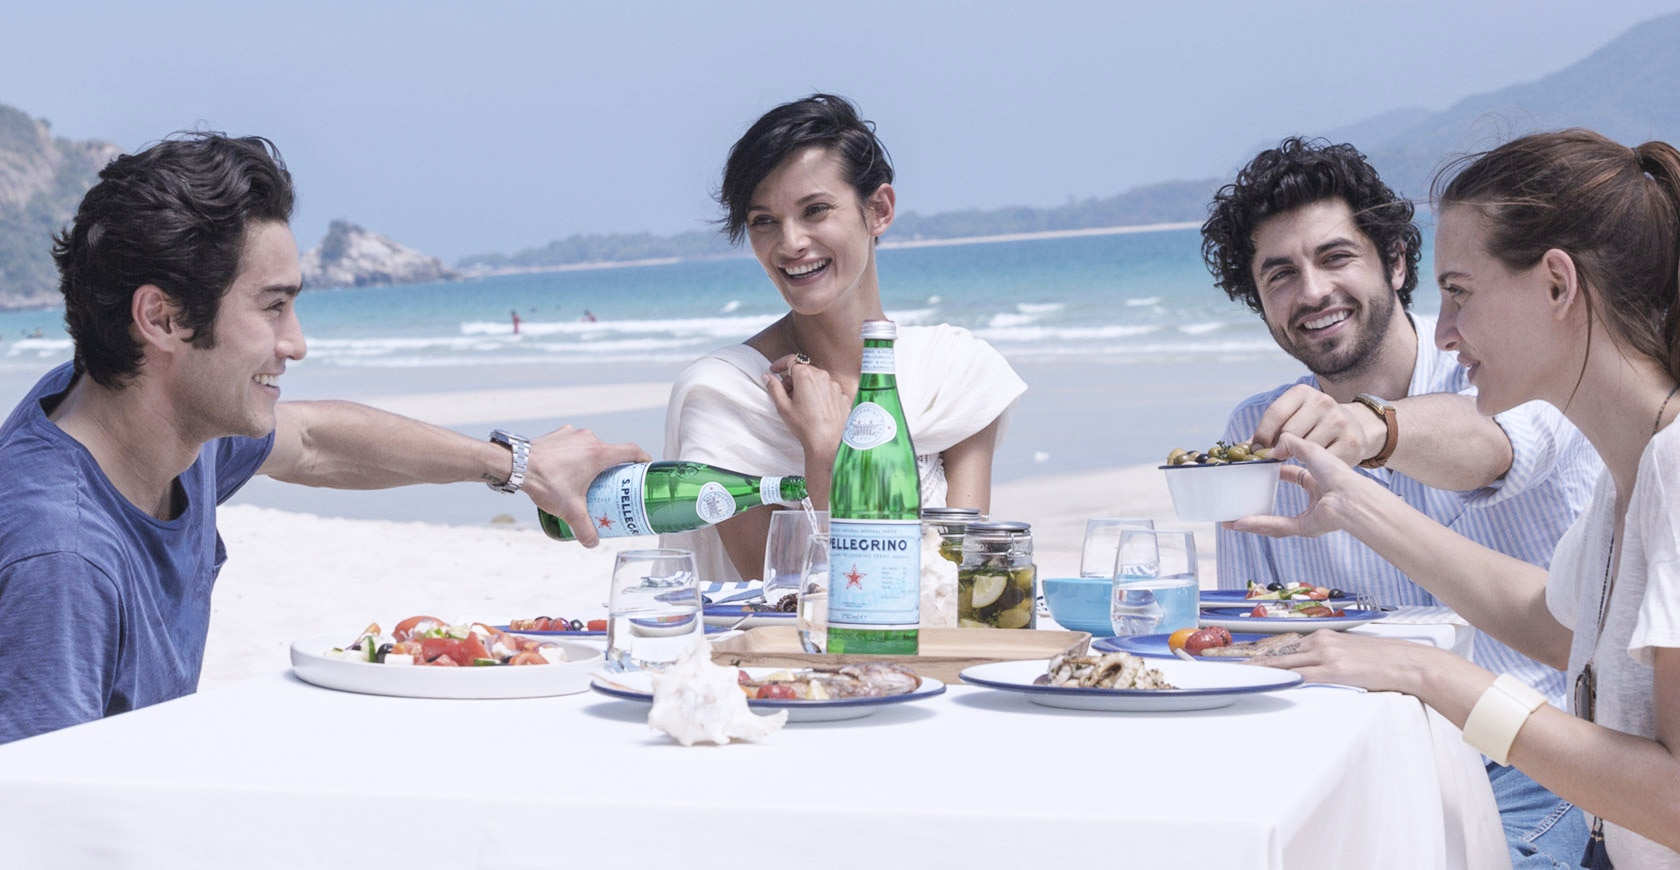 A true taste experience with S.Pellegrino sparkling water